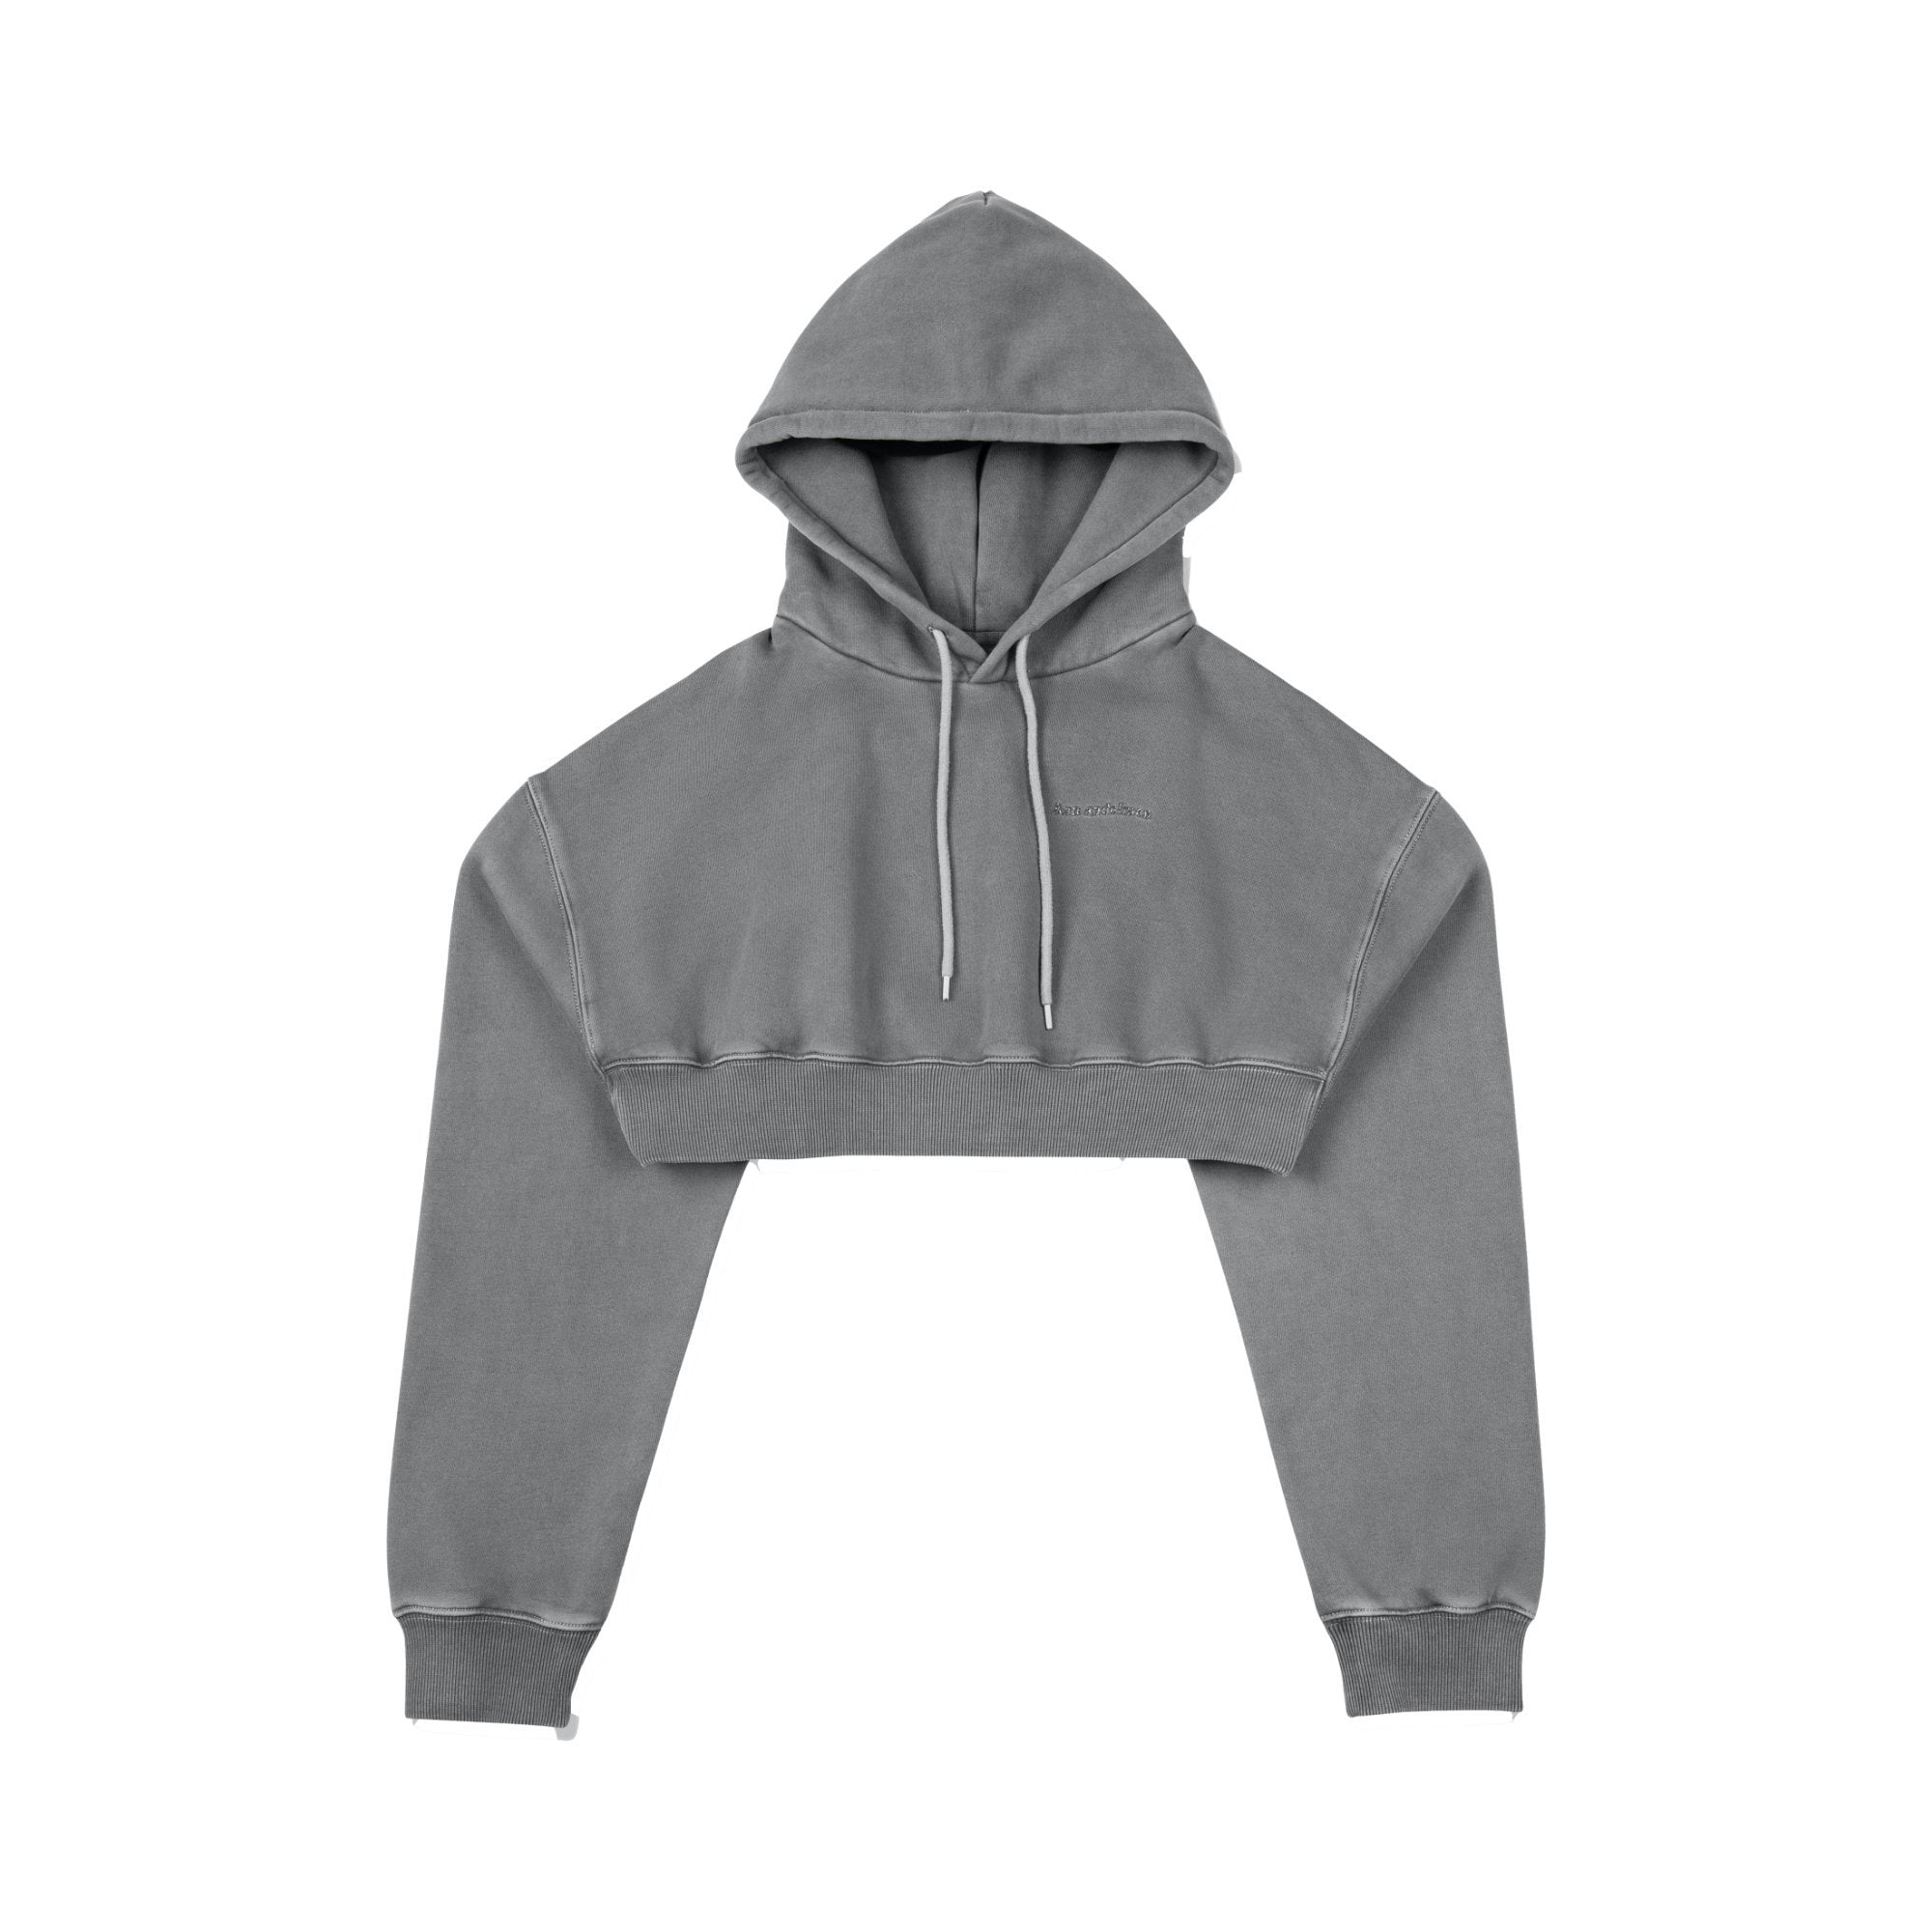 ANN ANDELMAN Grey Sport Hoodie | MADA IN CHINA